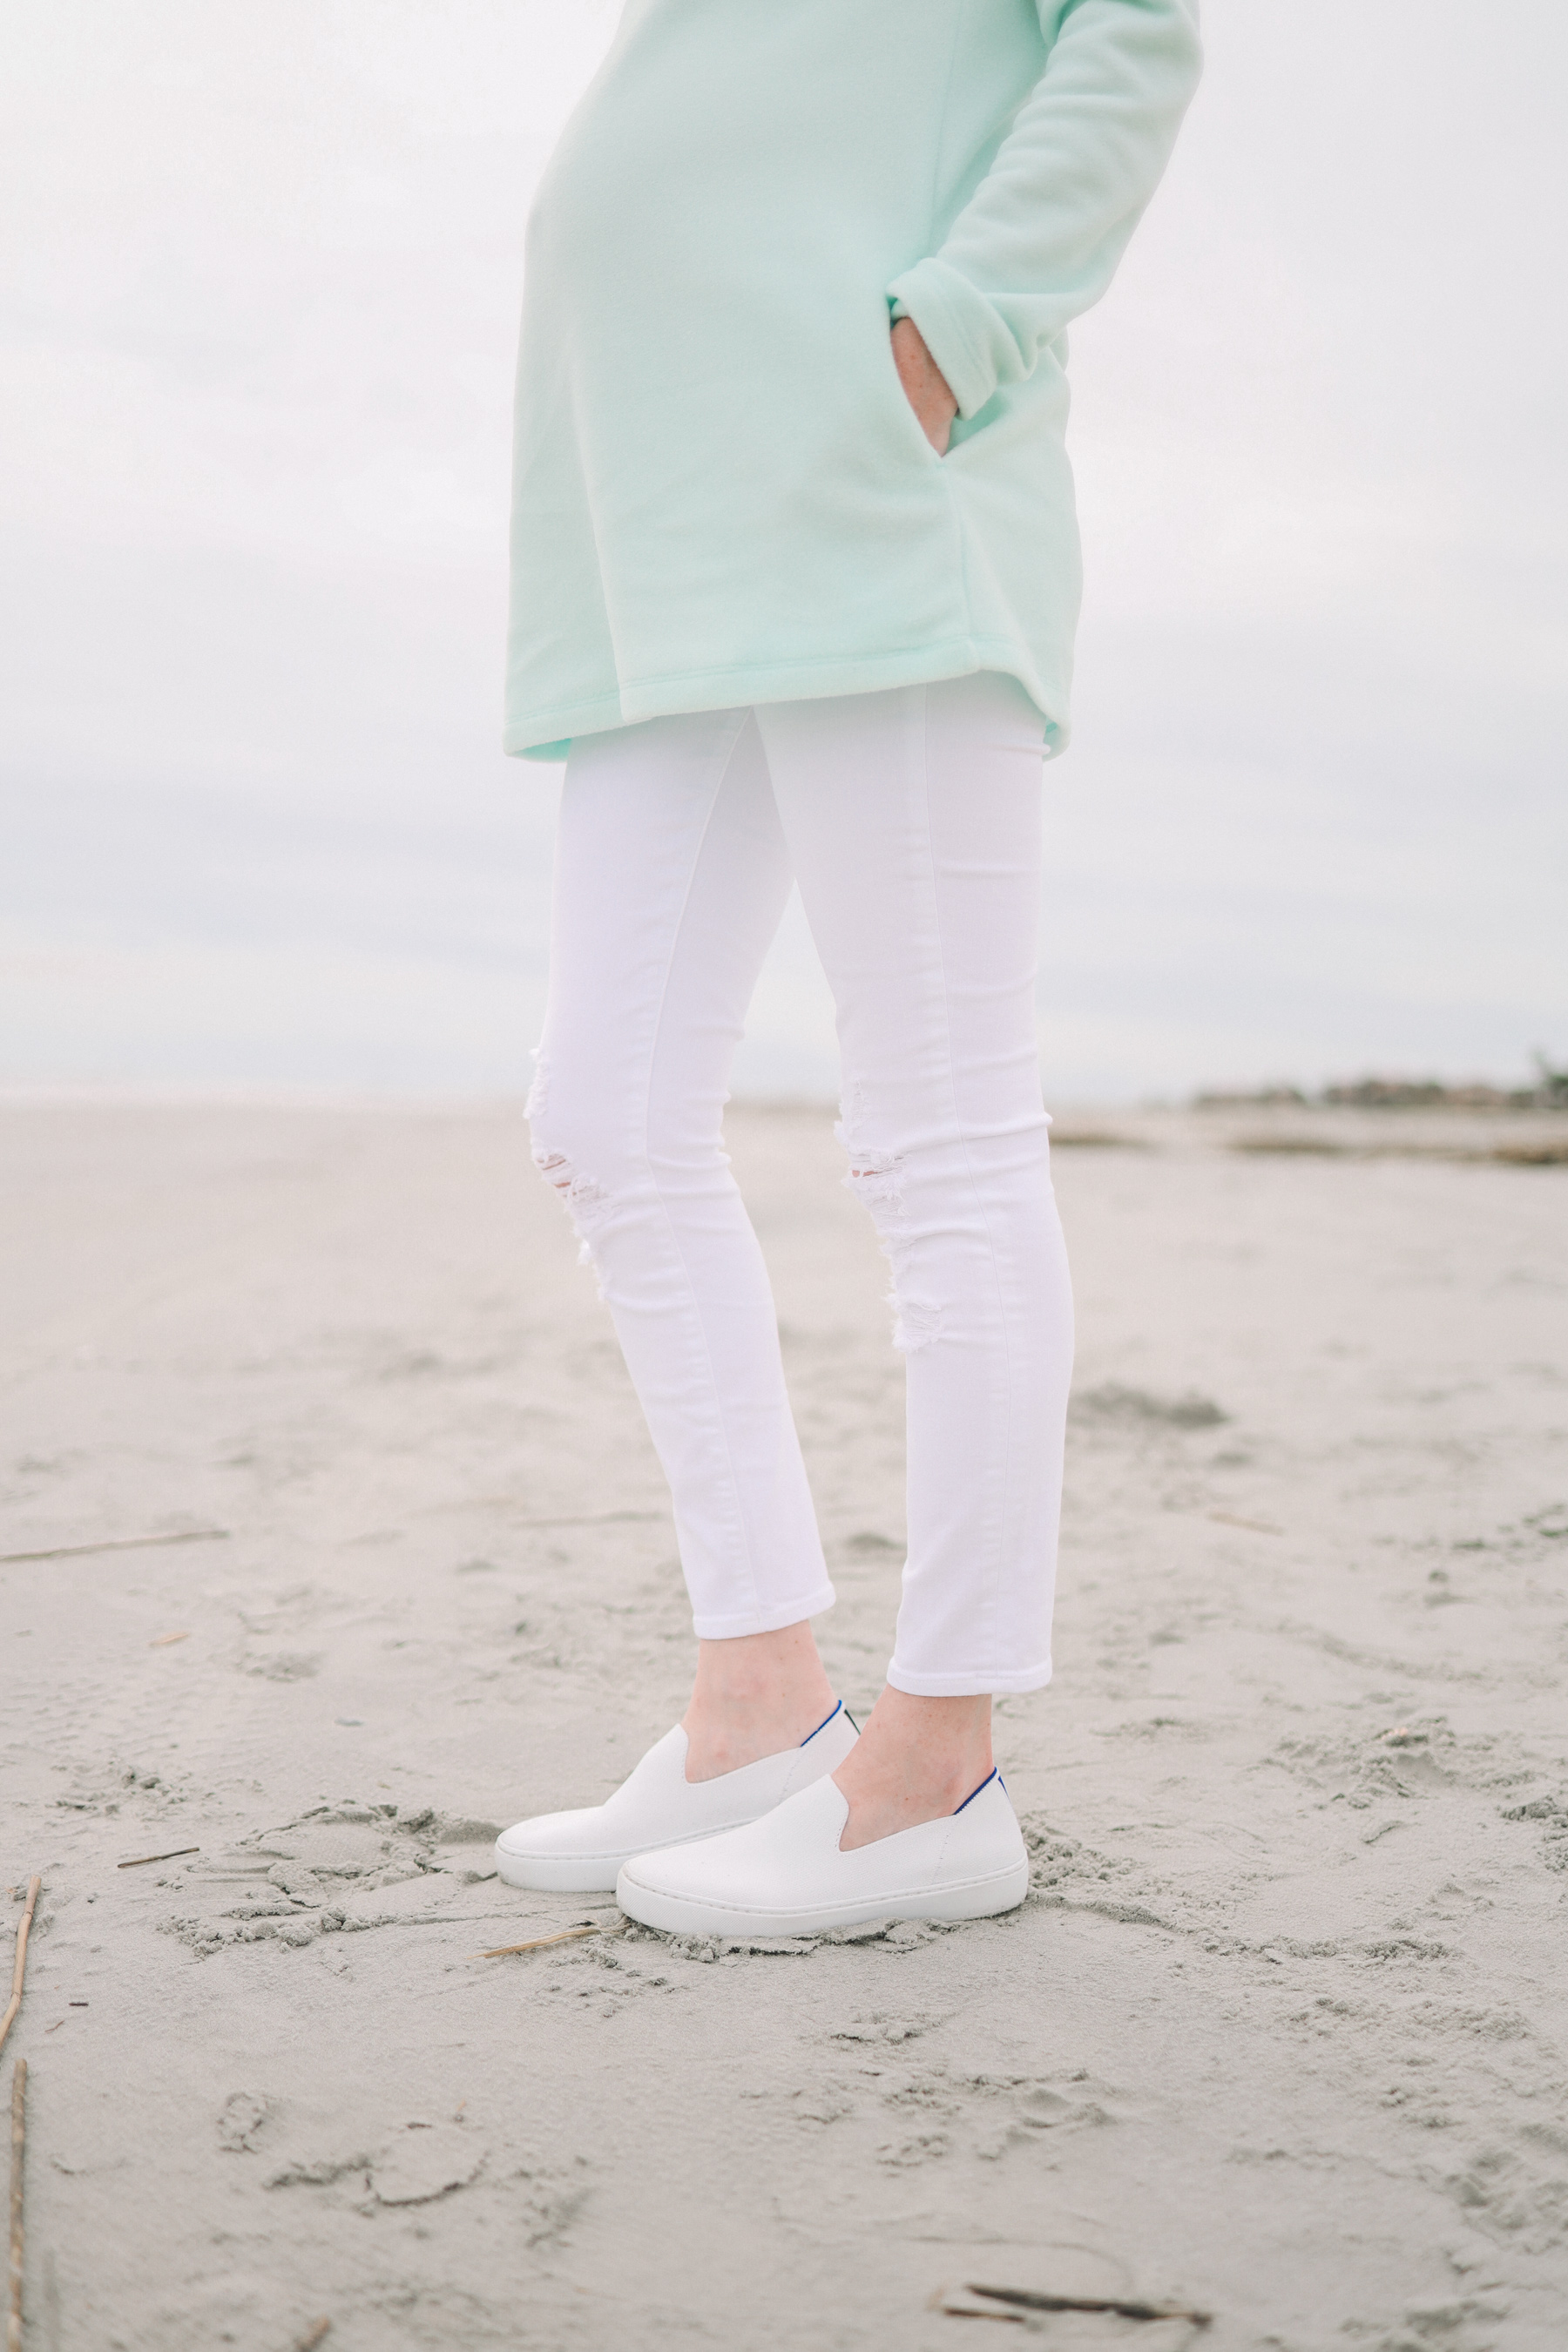 White J Brand Maternity Ankle Jeans / Rothy's Machine-Washable Sneakers / Vineyard Vines Hat